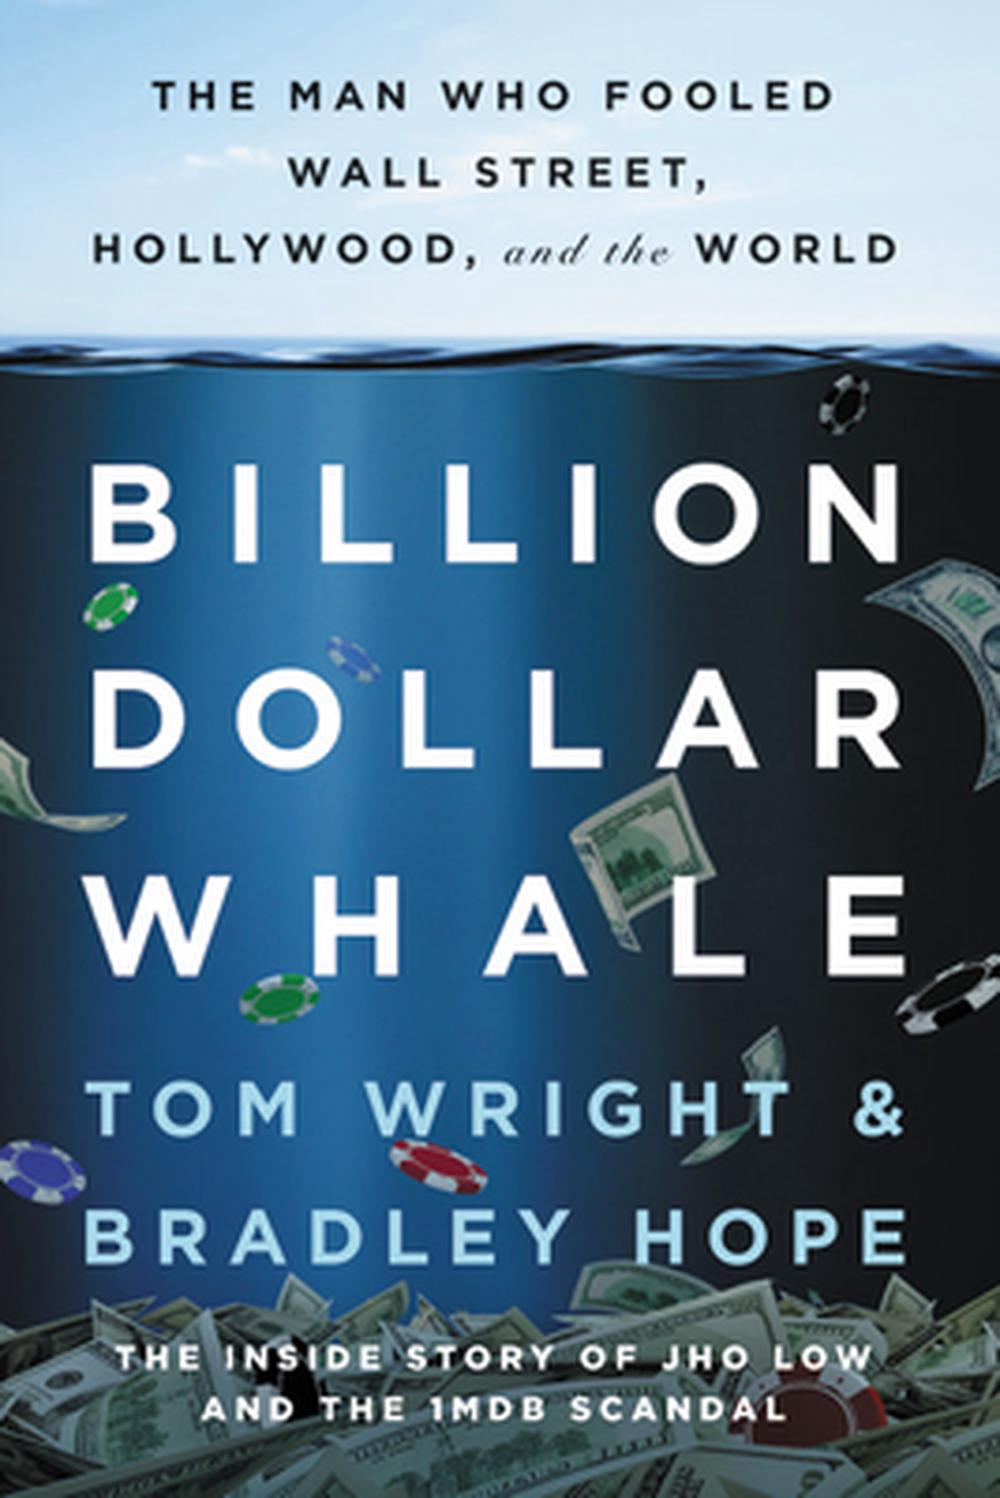 Billion Dollar Whale: The Man Who Fooled Wall Street, Hollywood, and the World by Bradley Hope, ISBN: 9780316453479